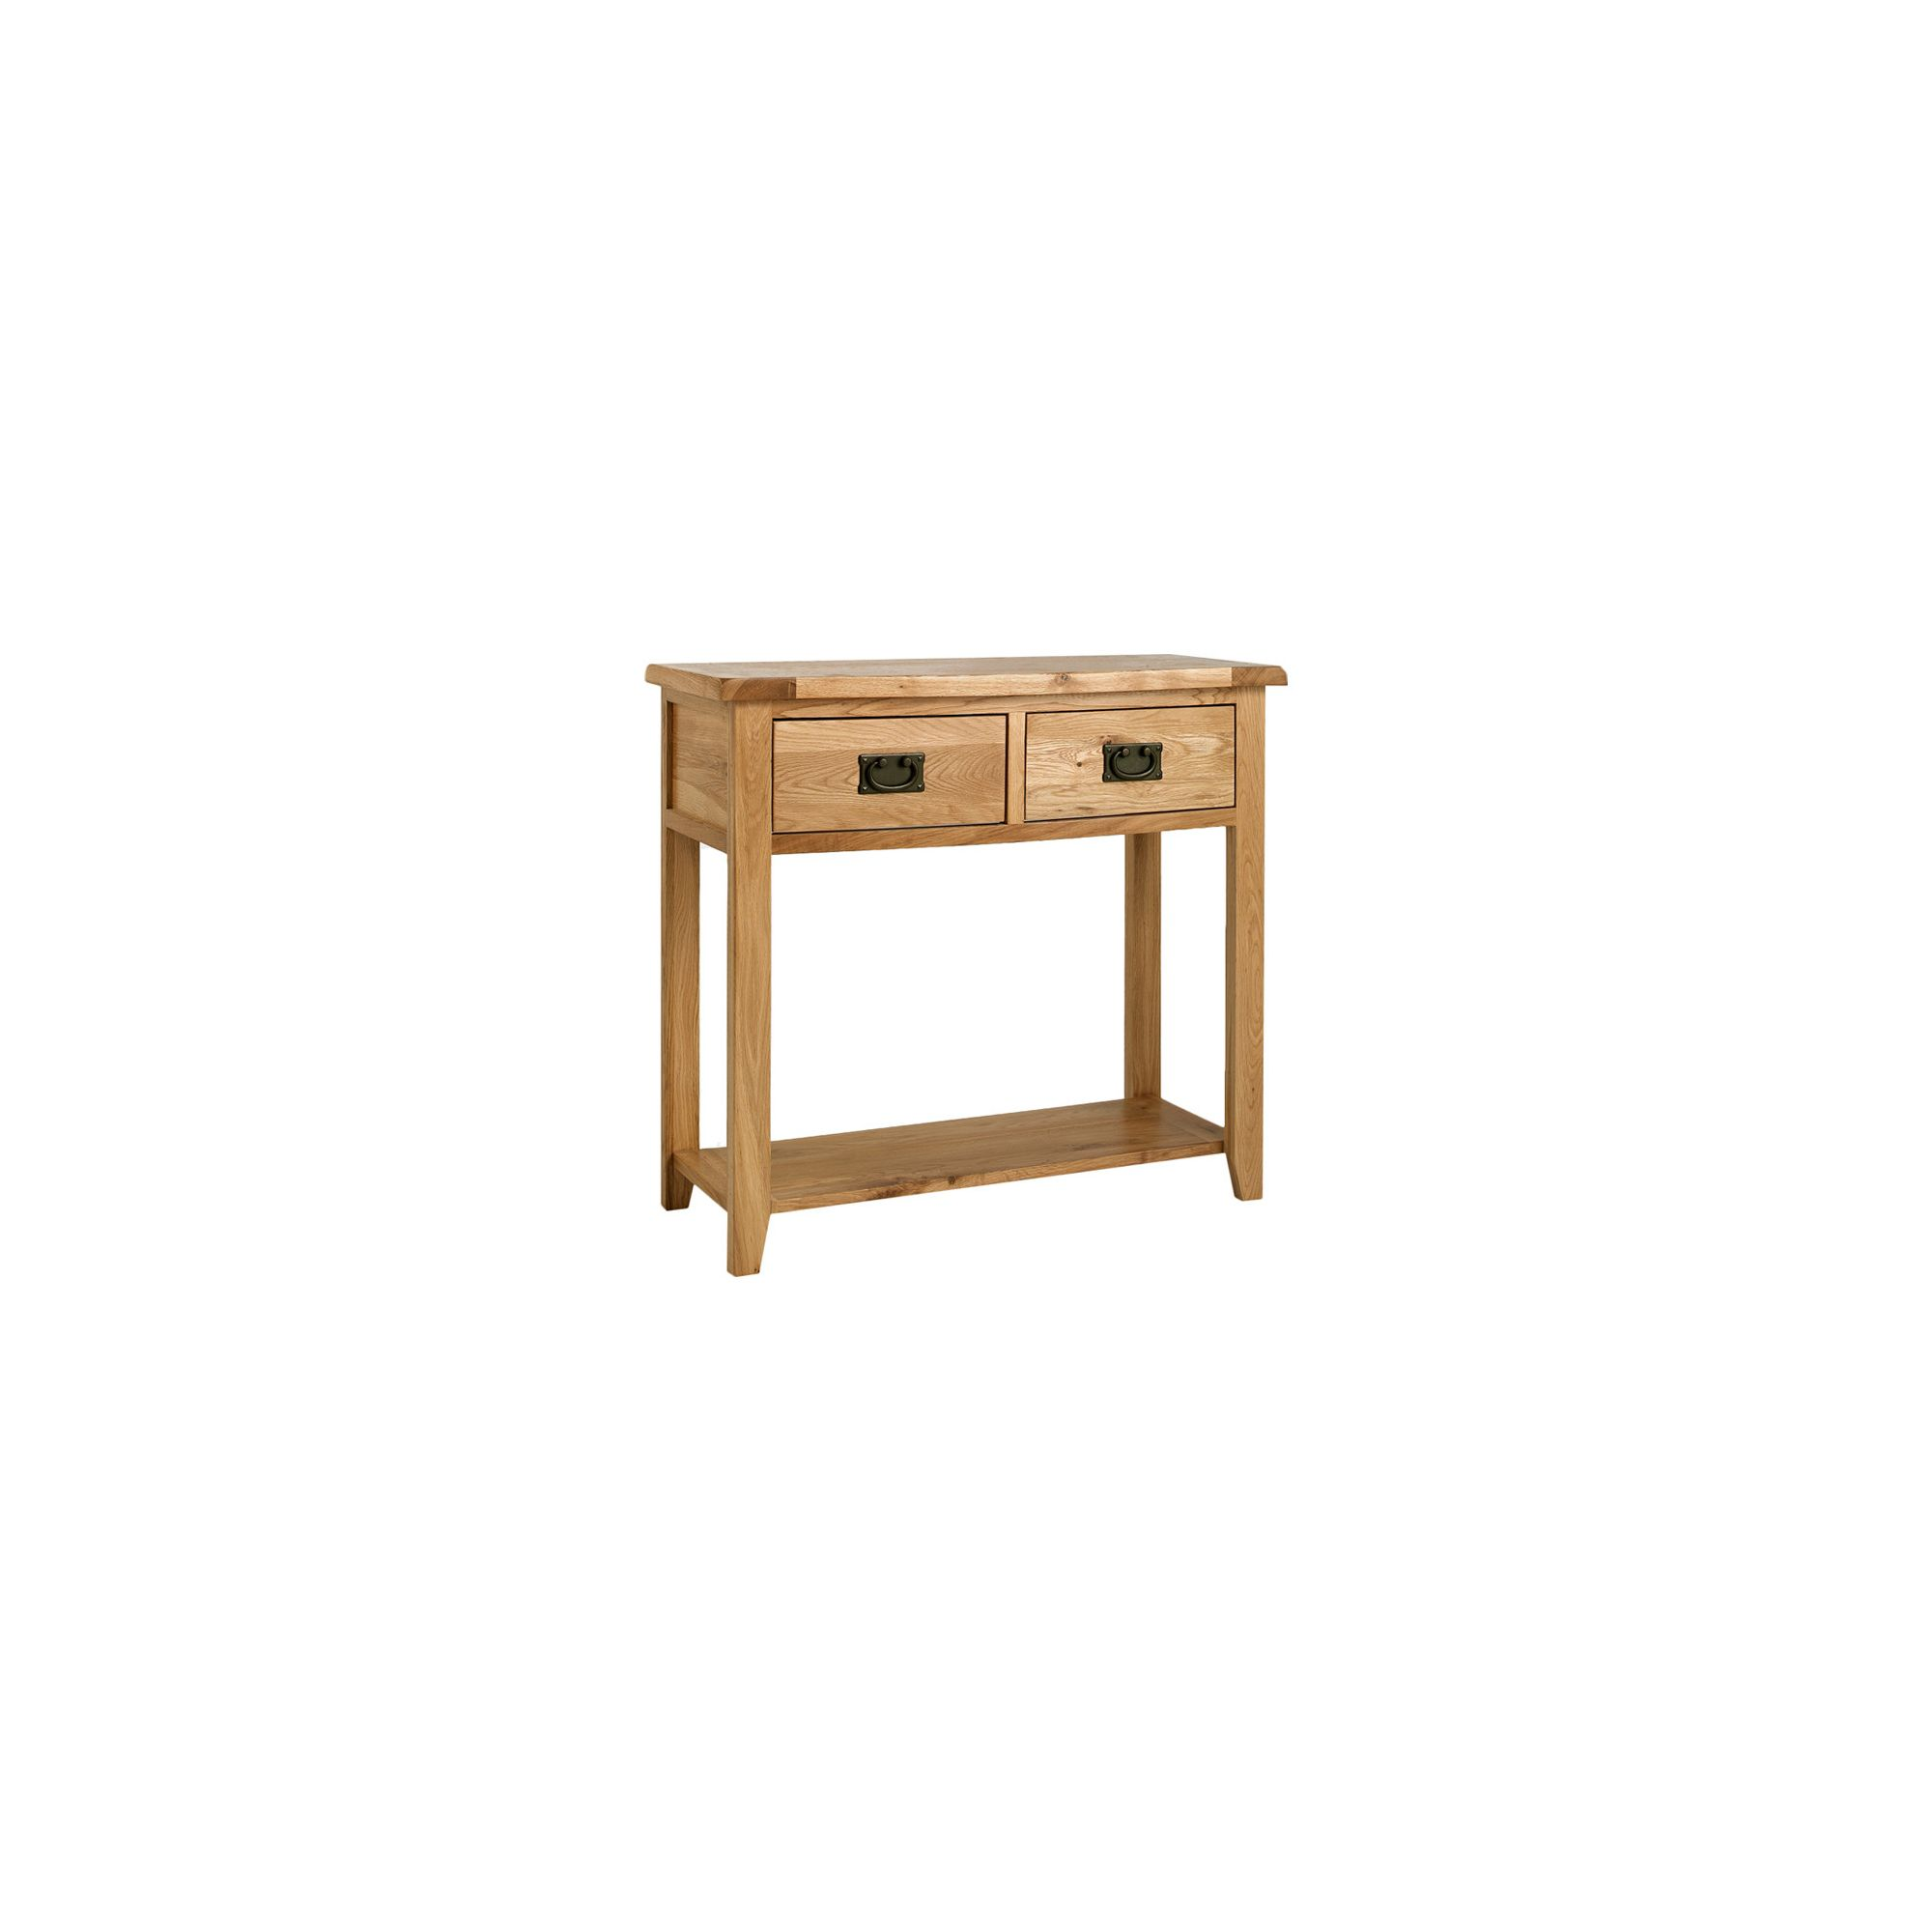 Ametis Westbury Reclaimed Oak Console Table at Tesco Direct